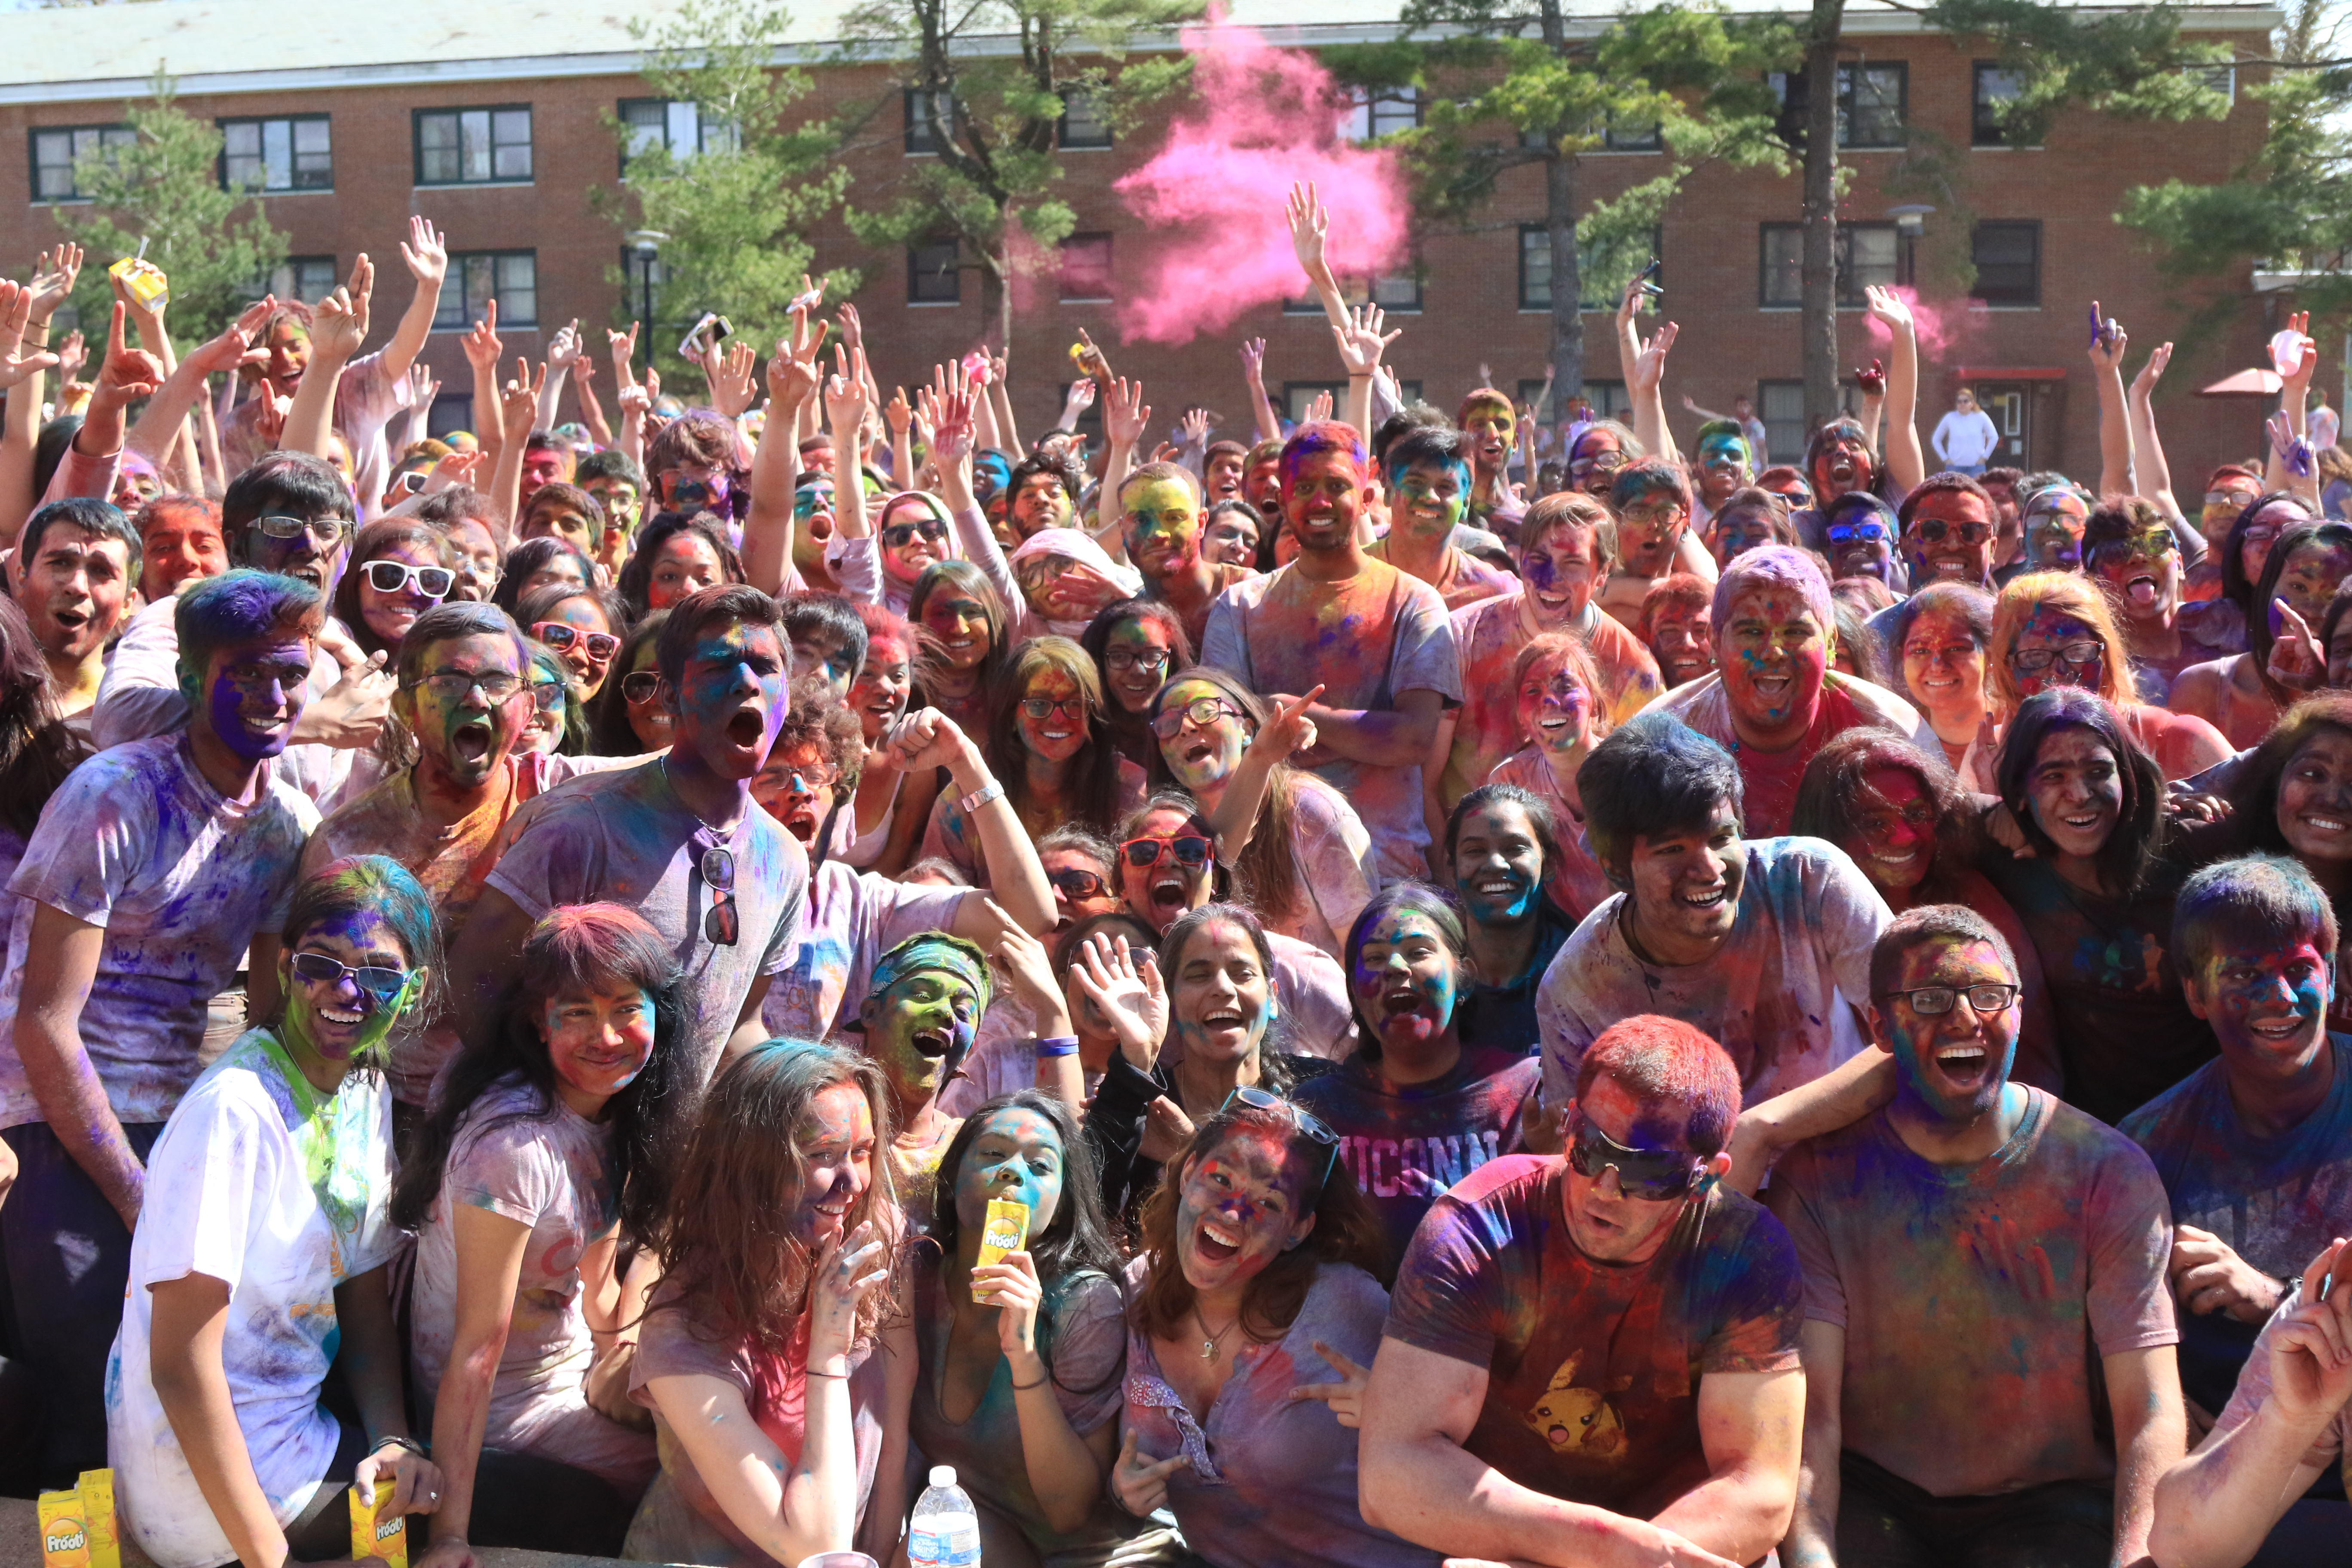 Students came out in force to celebrate Holi 2015 on April 19. BASIL JOHN / THE STATESMAN